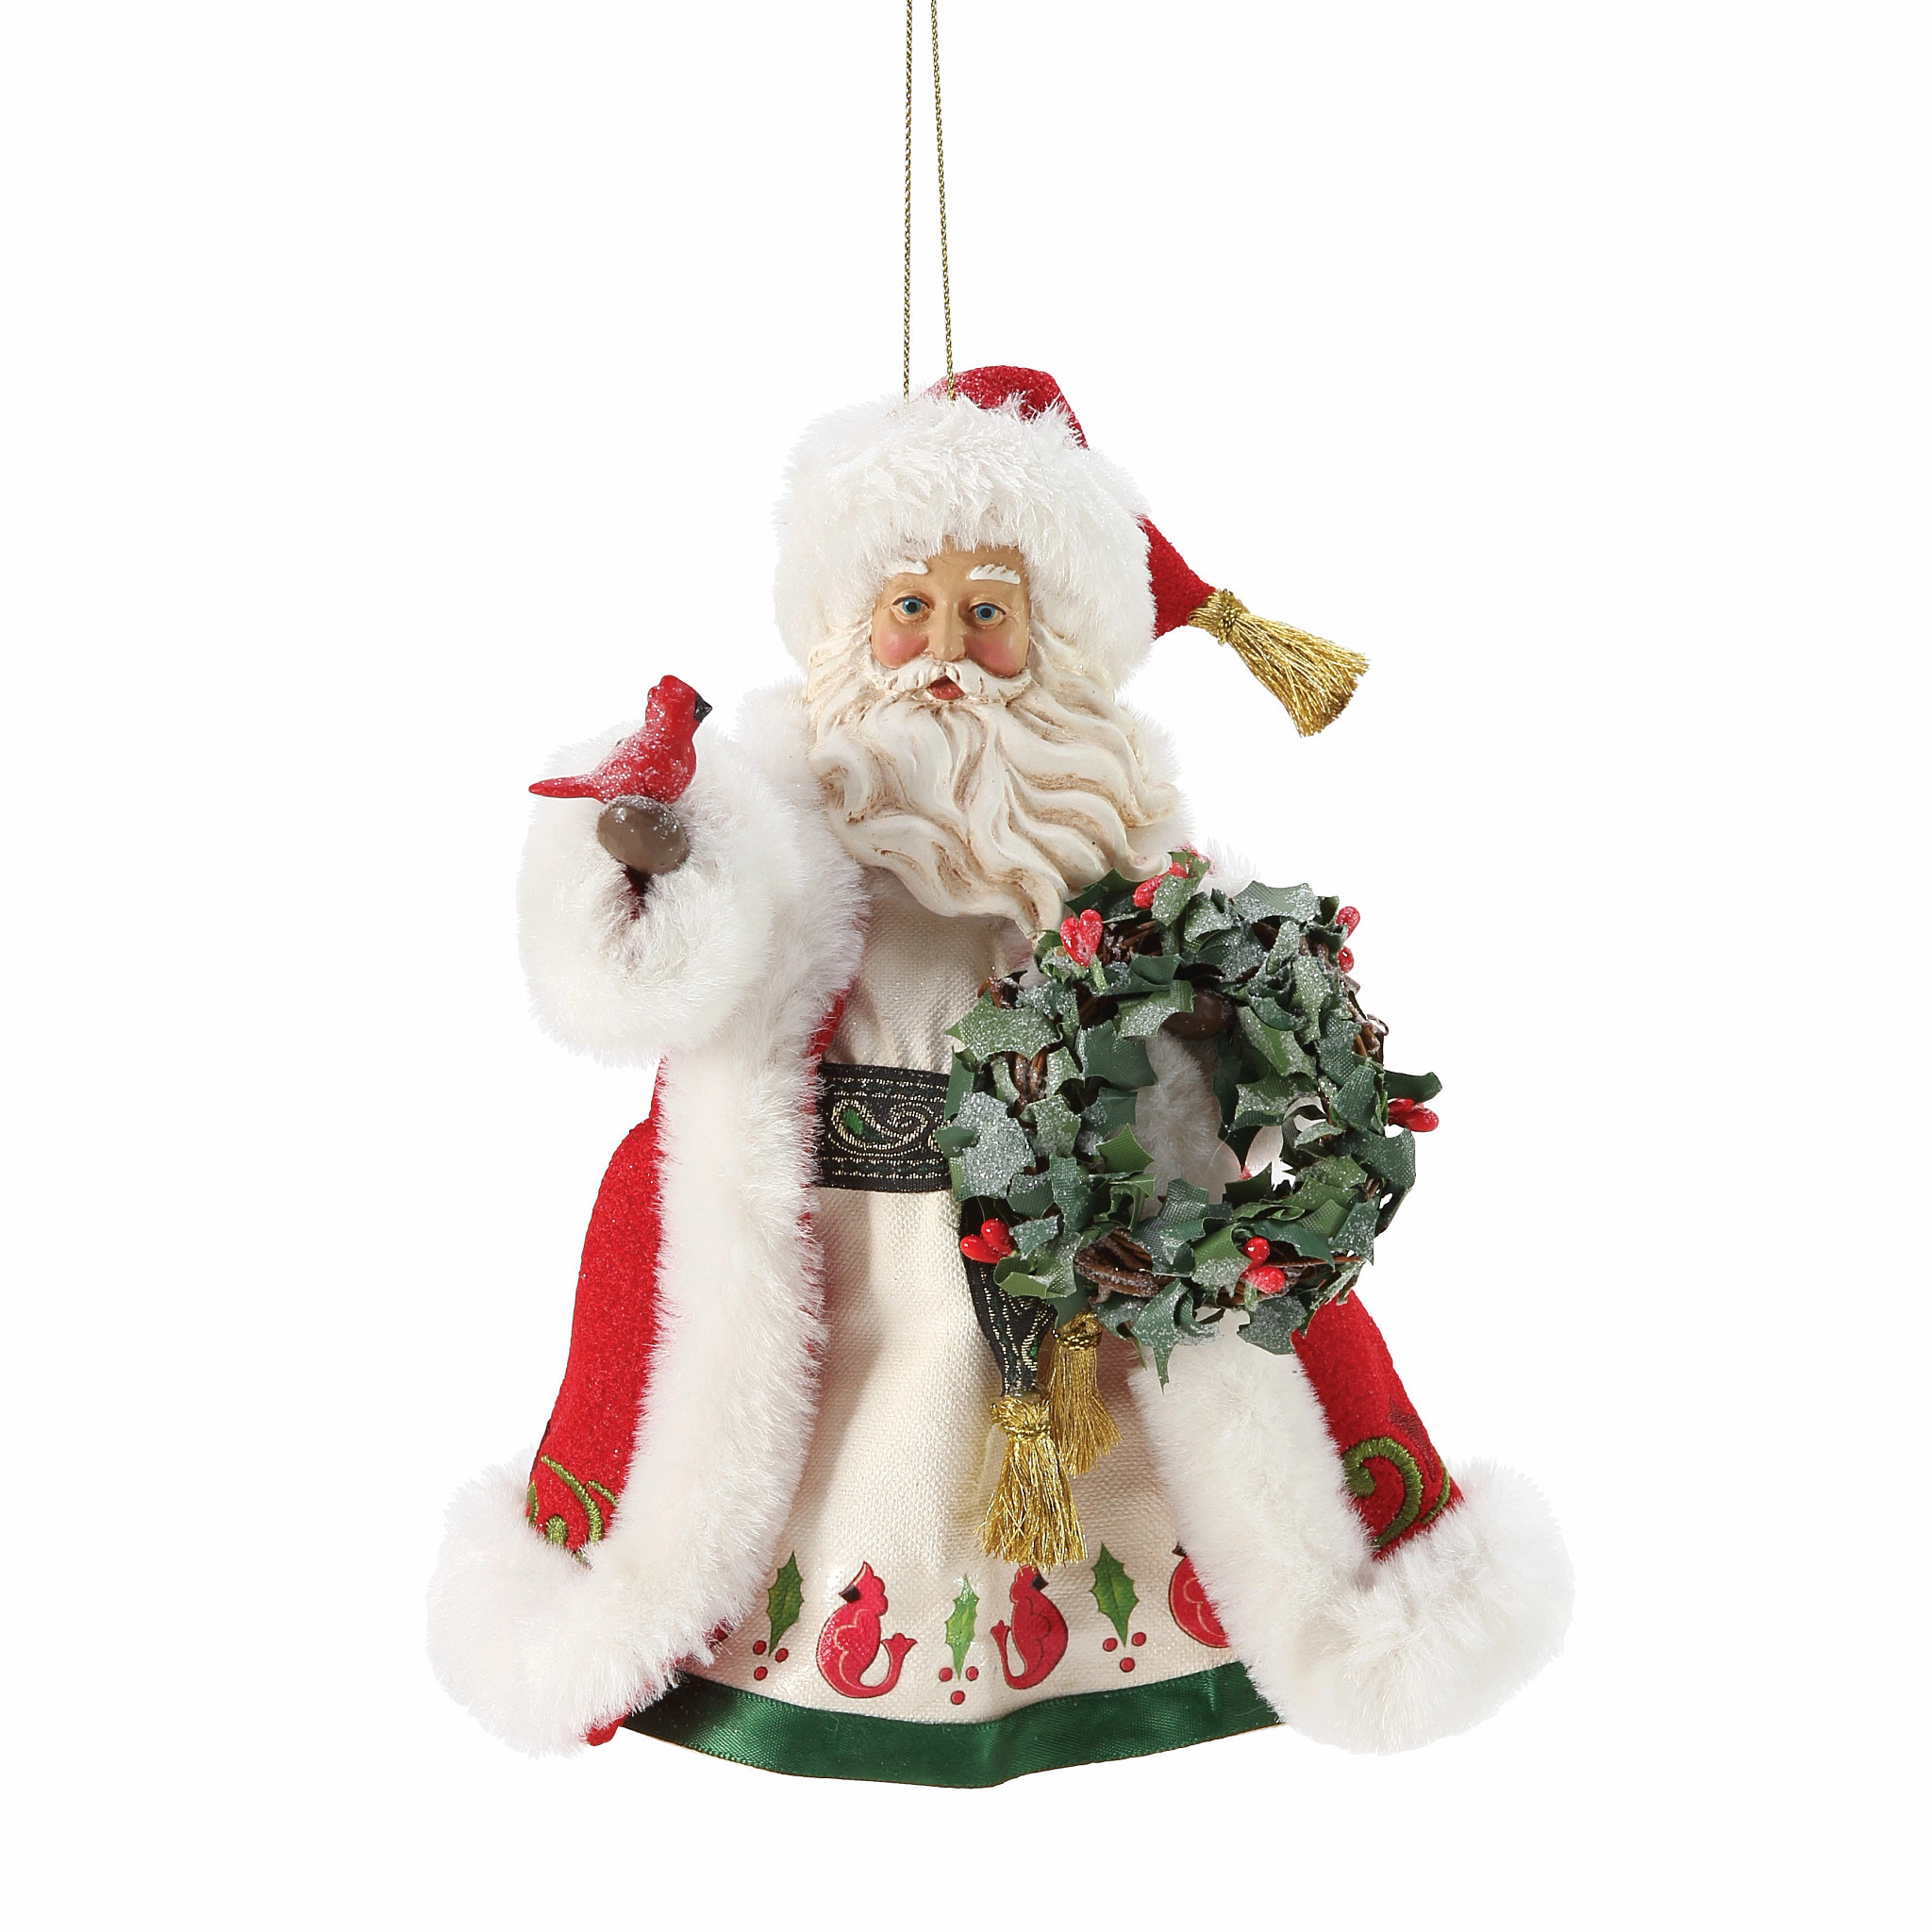 Department 56 ® - Others 'Merry Cardinal (Hanging Ornament) N' 2021